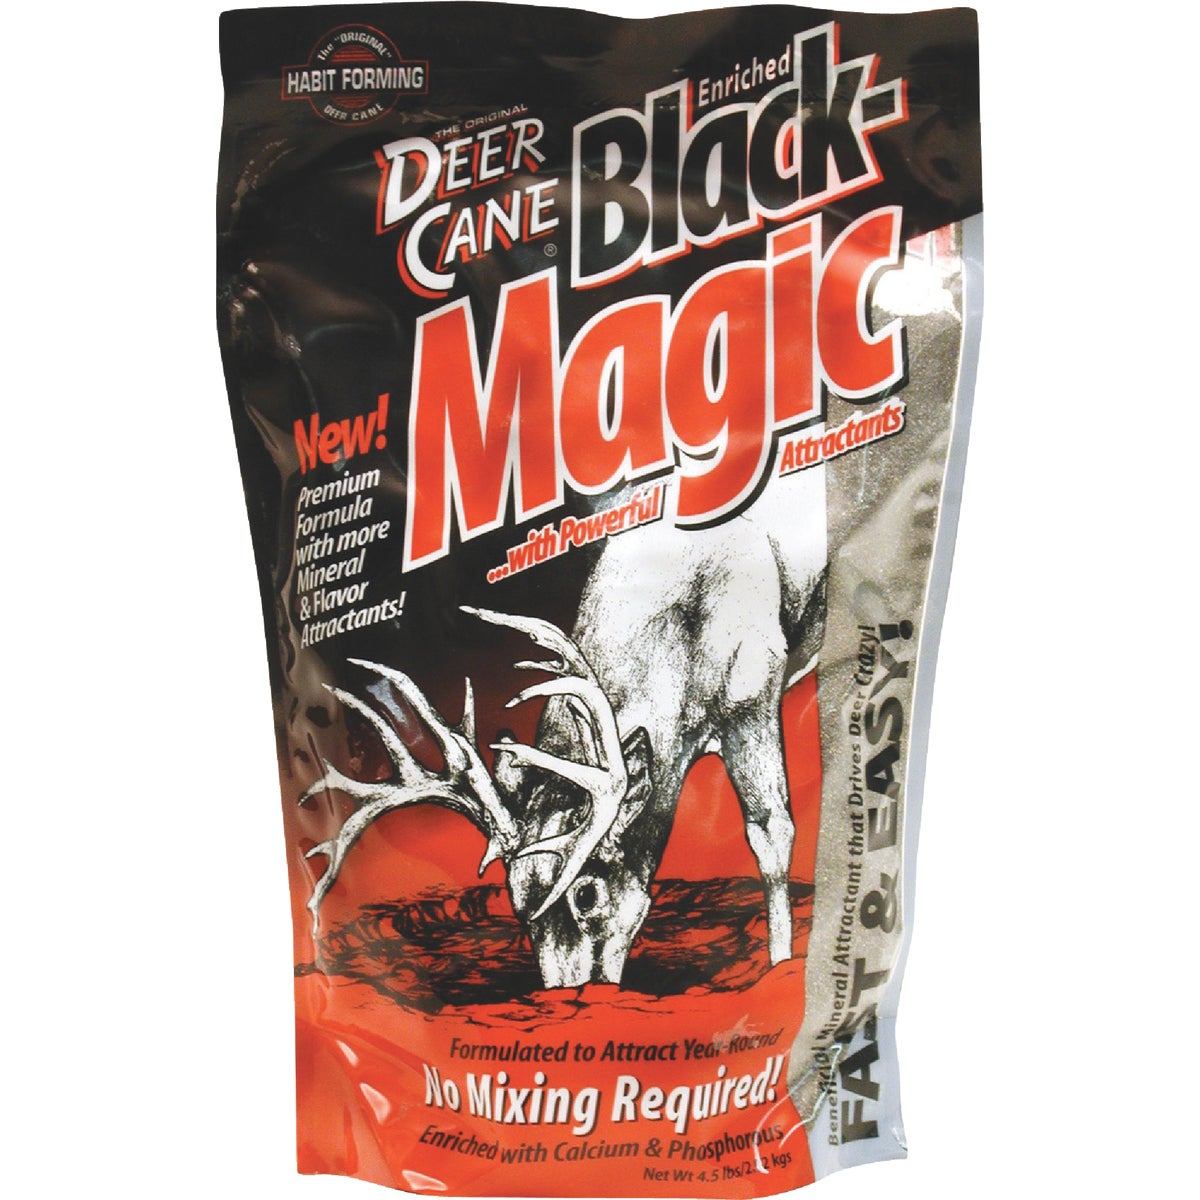 BLACK MAGIC DEER CANE - 64502 by Evolved Habitats